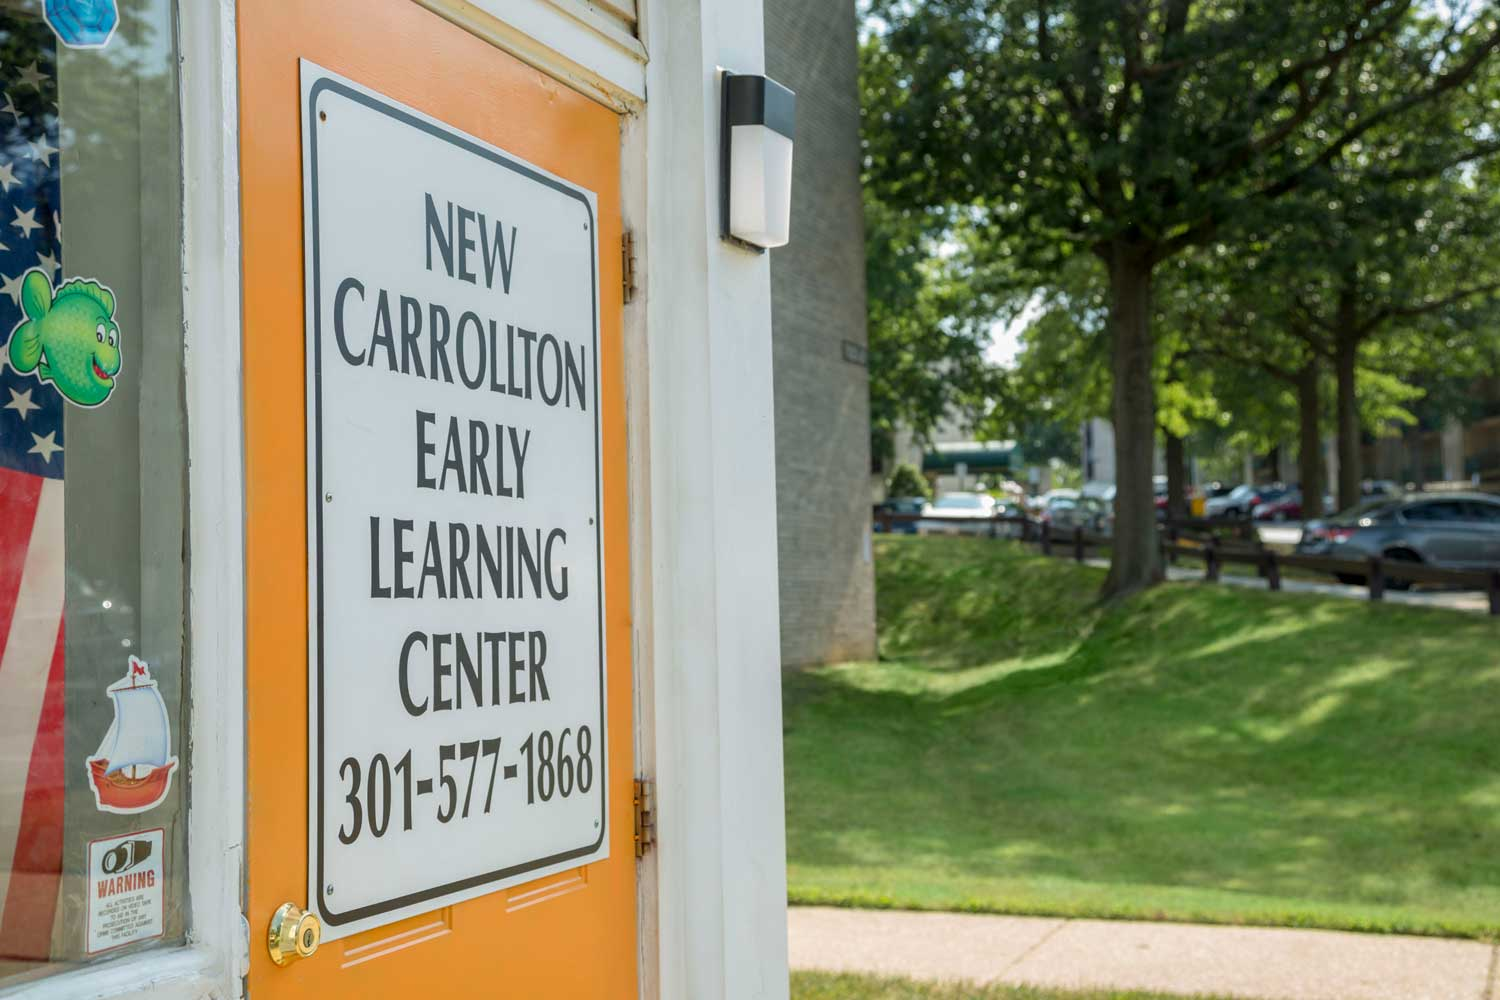 Onsite daycare available at Heritage Square Apartments in New Carrollton, MD